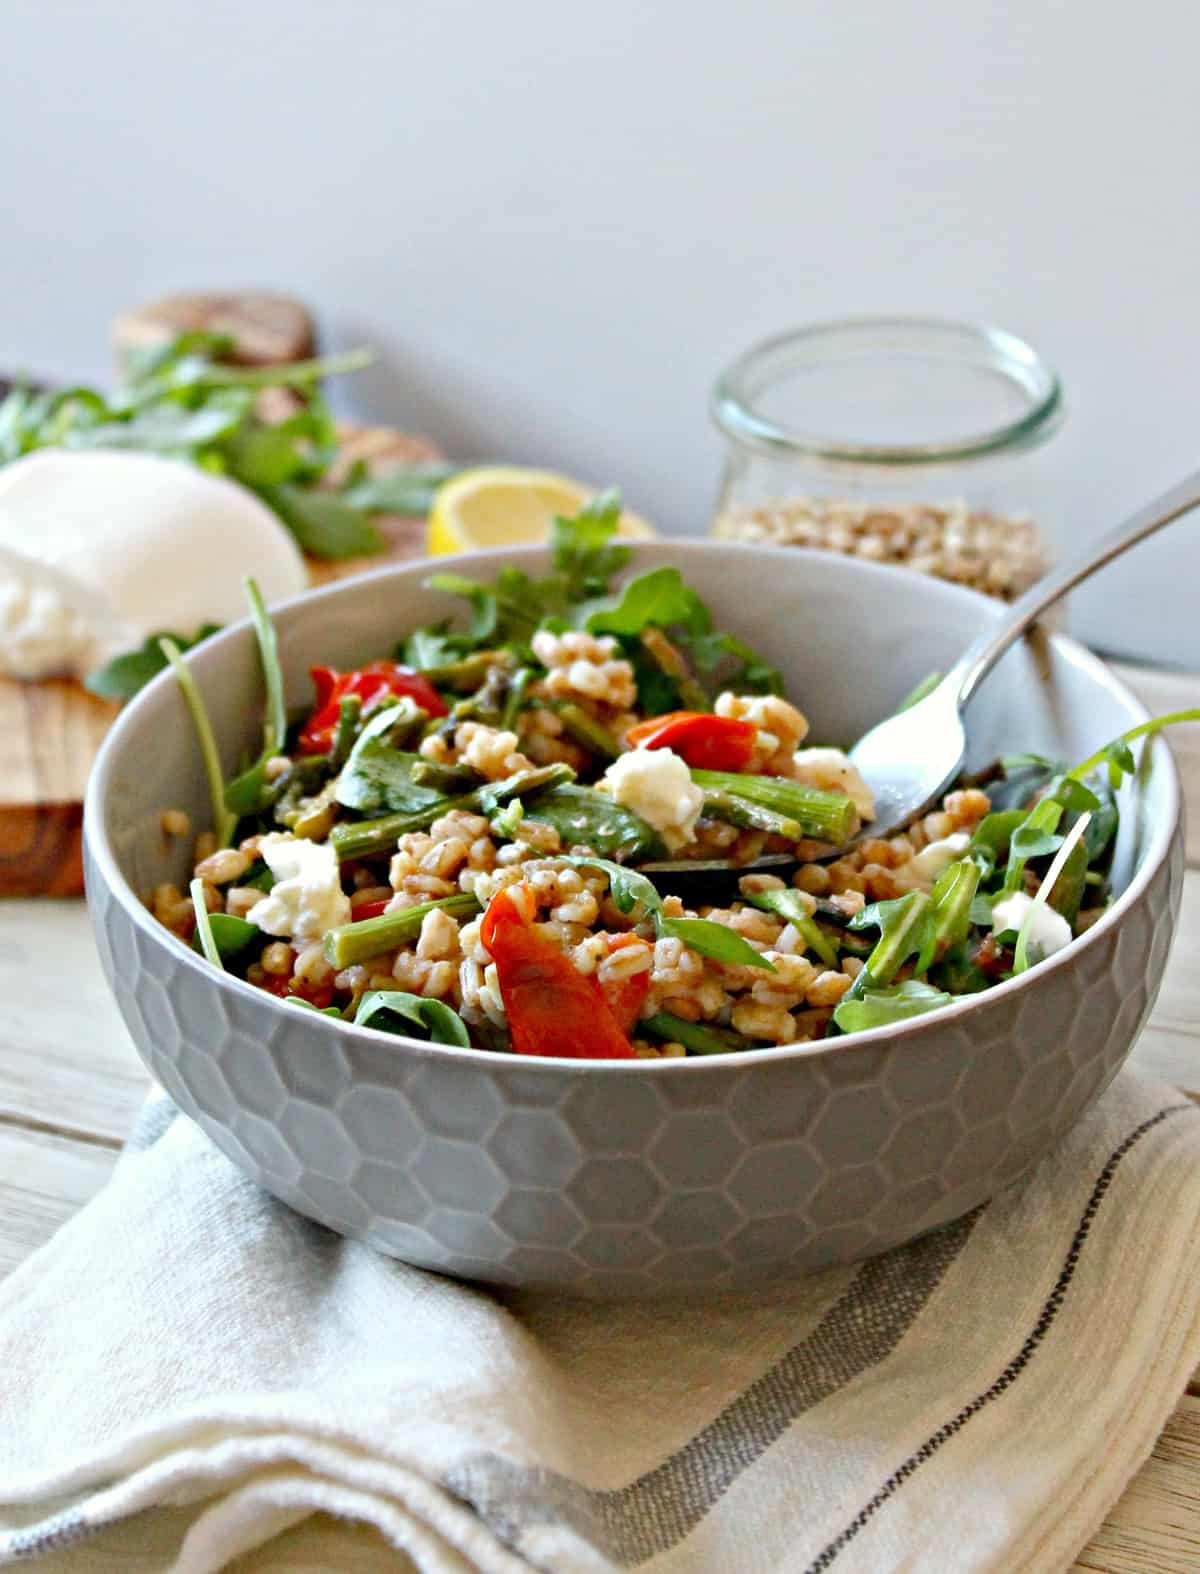 This simple Springtime Farro Salad is so fresh, light, and filling, perfect for a light lunch